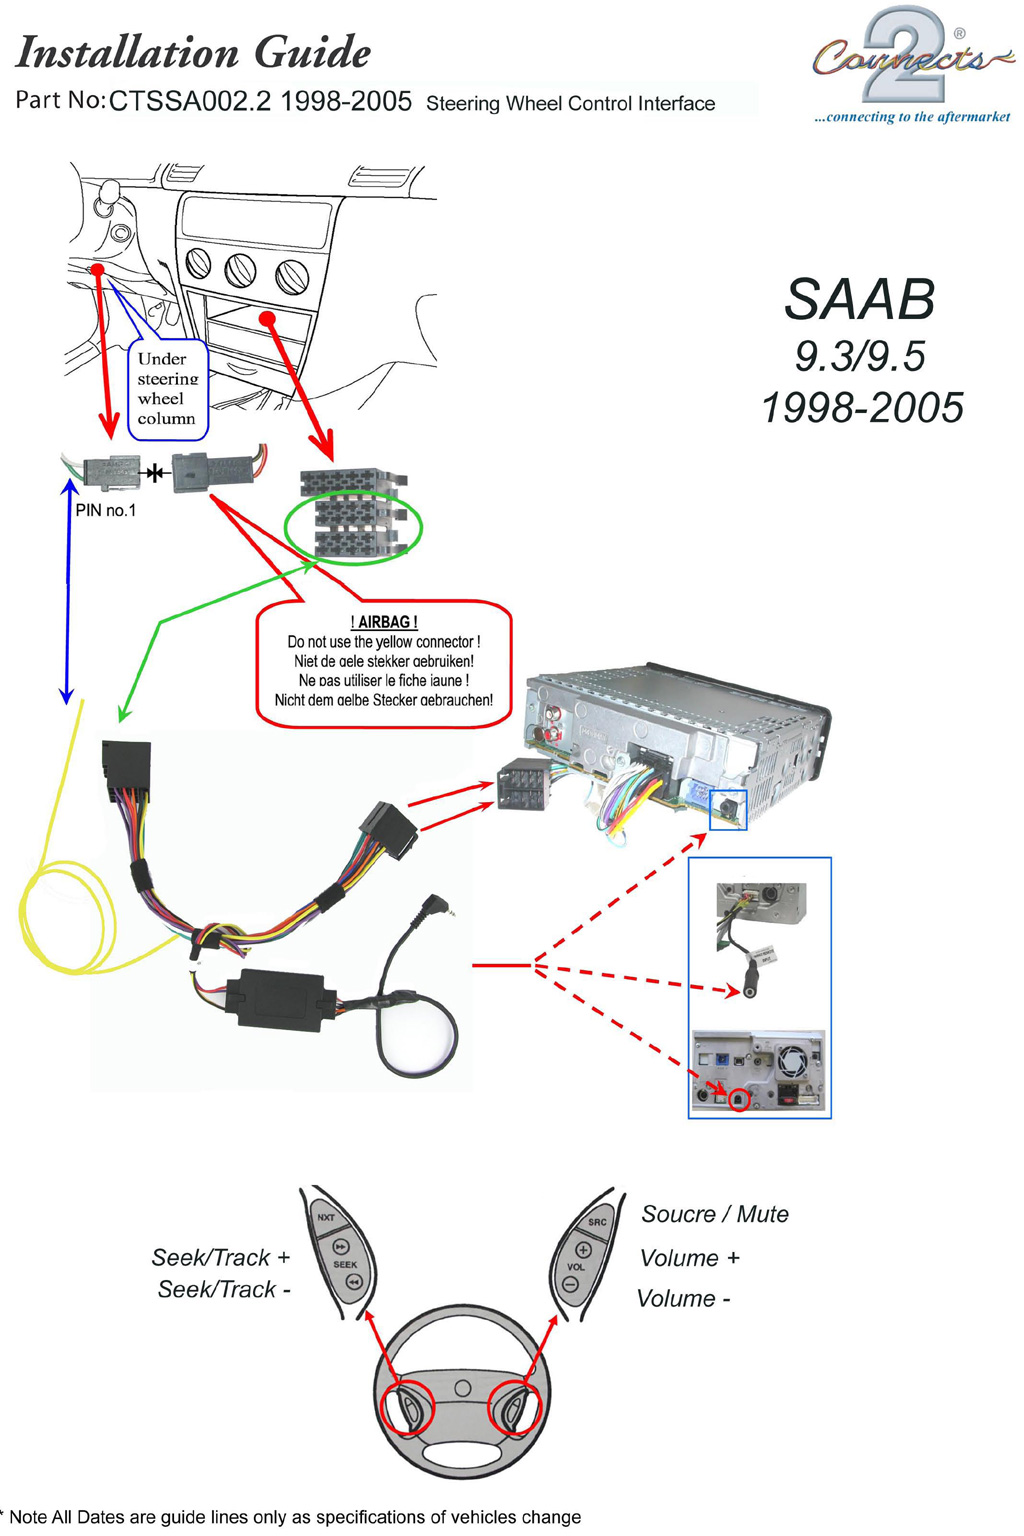 Connects2 Steering Wheel  Stalk Interface For Saab